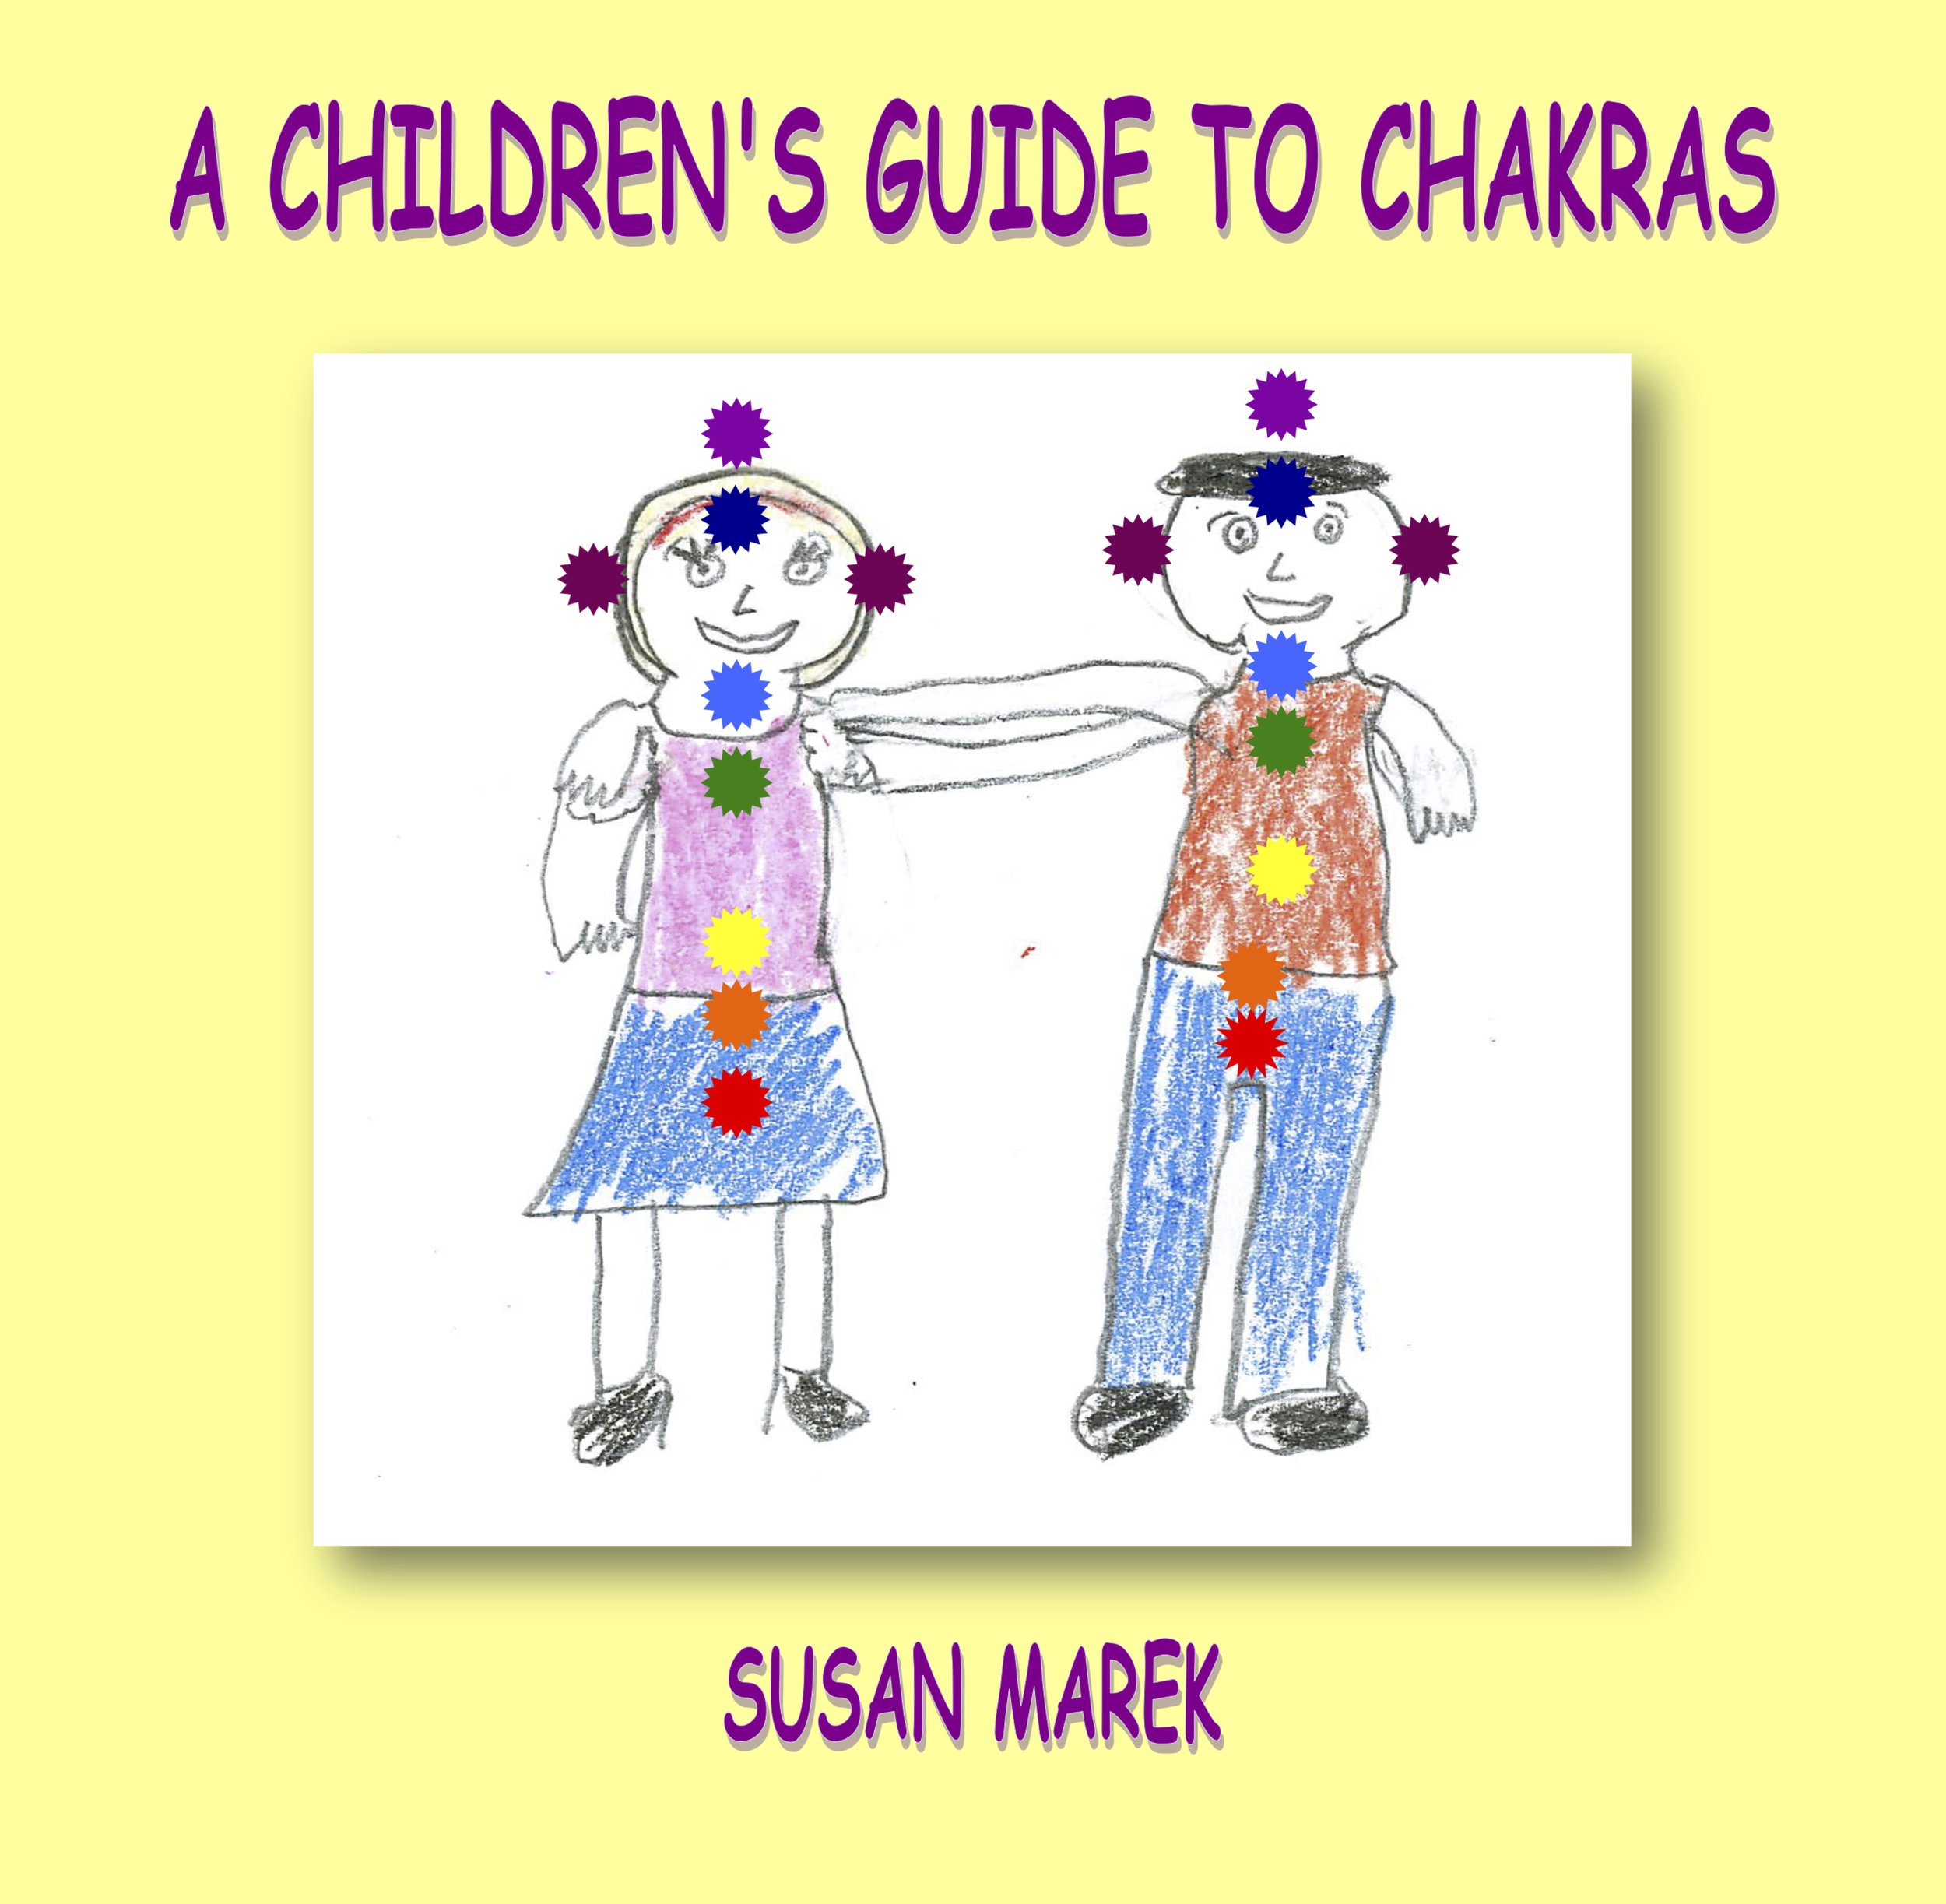 A Children's Guide to Chakras - Available through Amazon.com, BarnesandNoble.com, and Powells.com. Also available for order from your favorite local bookseller. It's available in the Pacific Northwest at:Portland, Oregon at New Renaissance Bookshop and Spirit FeathersSeattle, Washington at East West BookshopAlso available on iBooks and Nook.